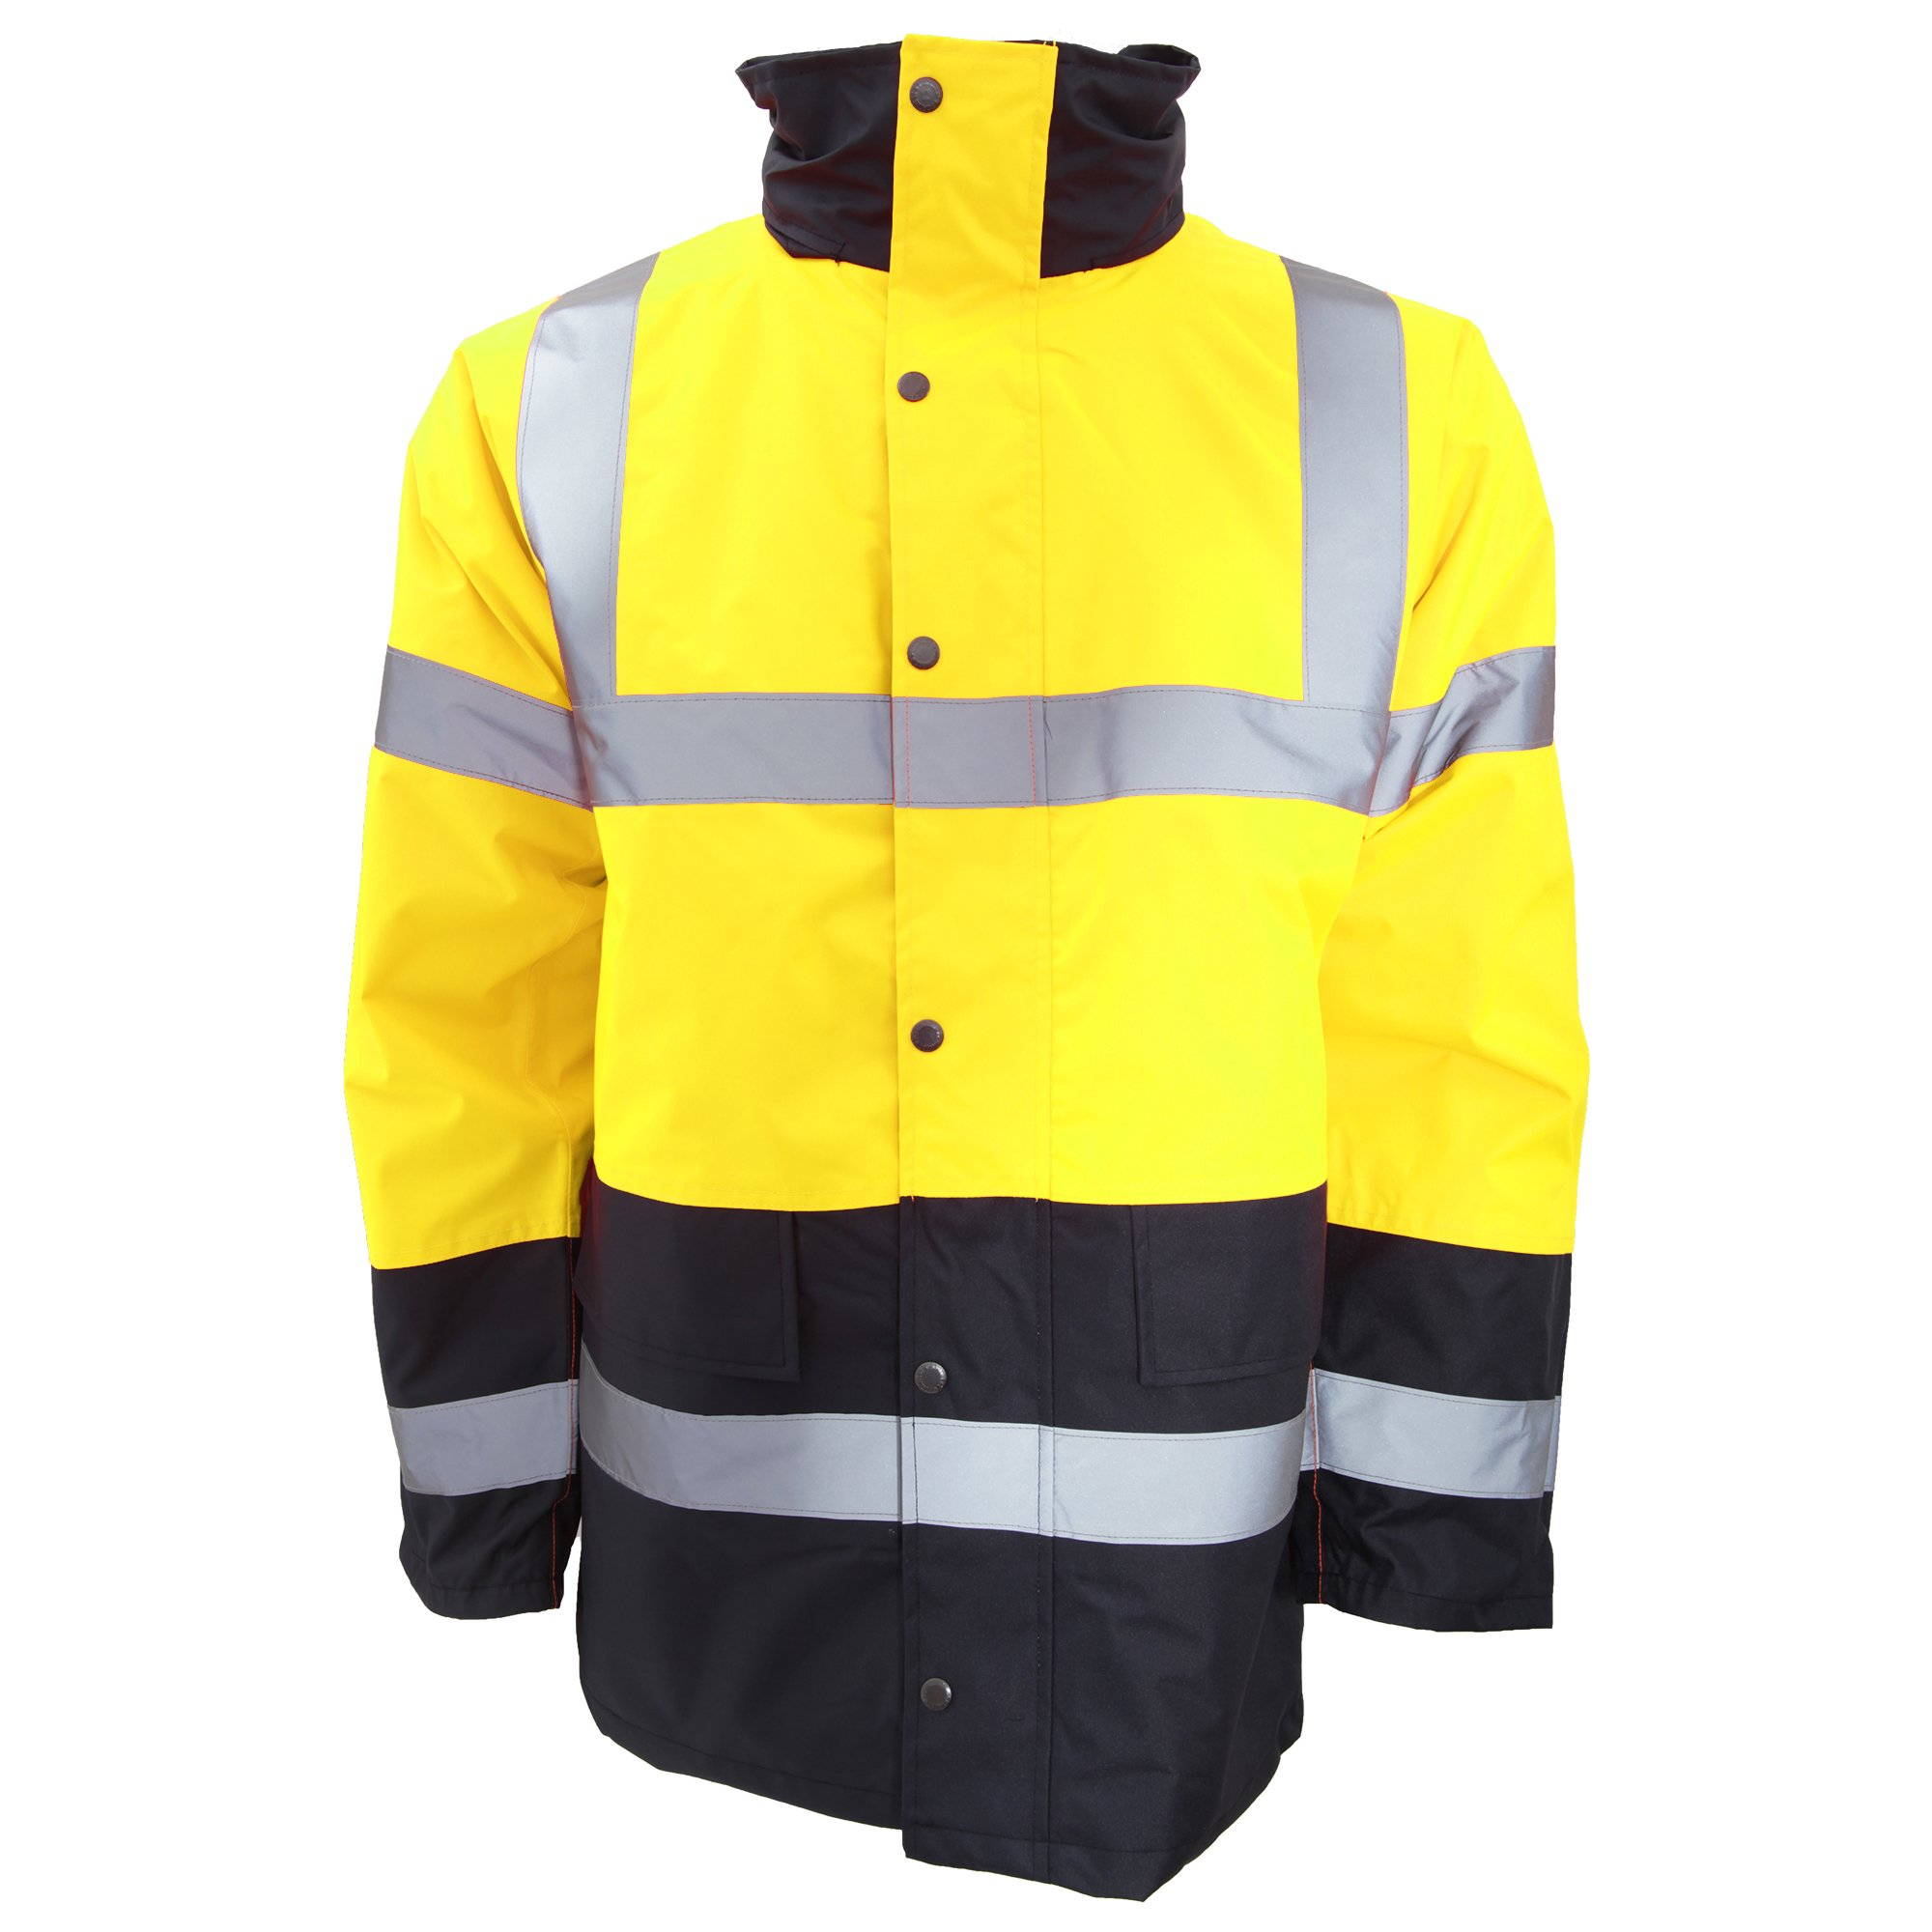 Portwest Mens Hi-Vis Waterproof Contrast Panel Traffic Jacket (L) (Yellow/Navy) by Portwest